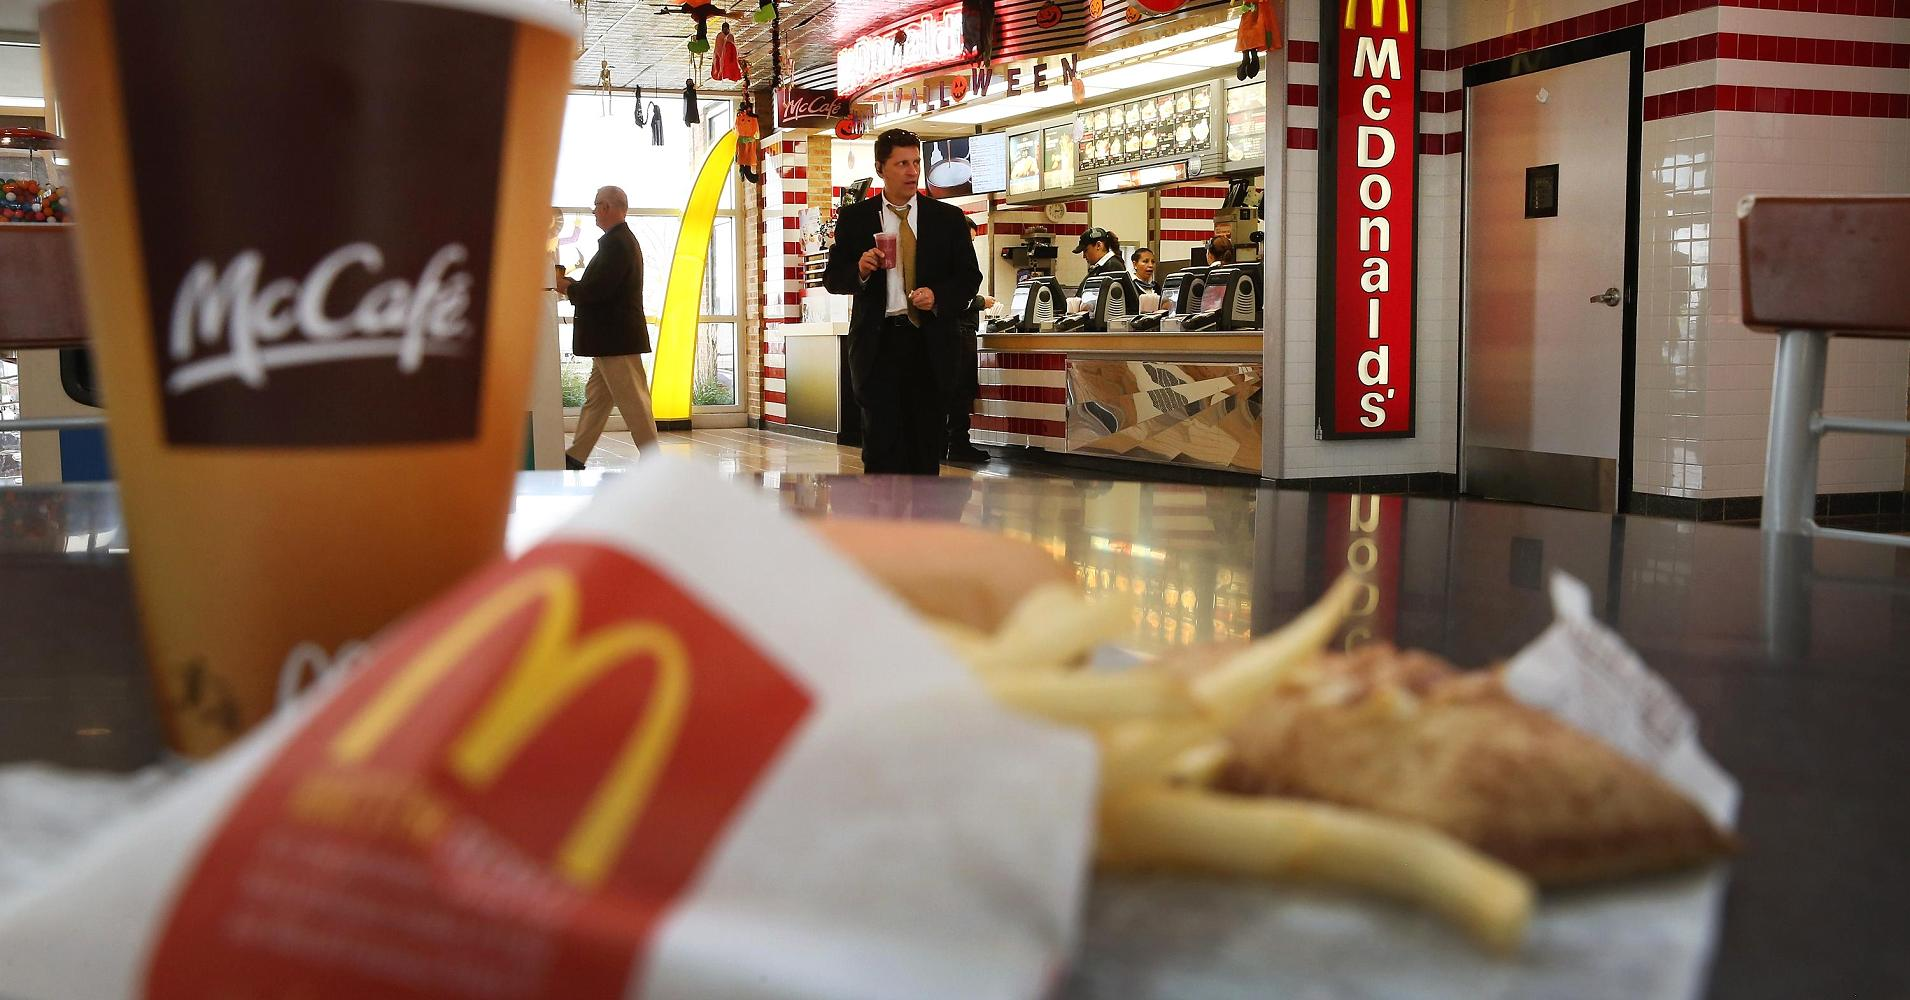 Why some say it's time to buy beaten-down shares of McDonald's